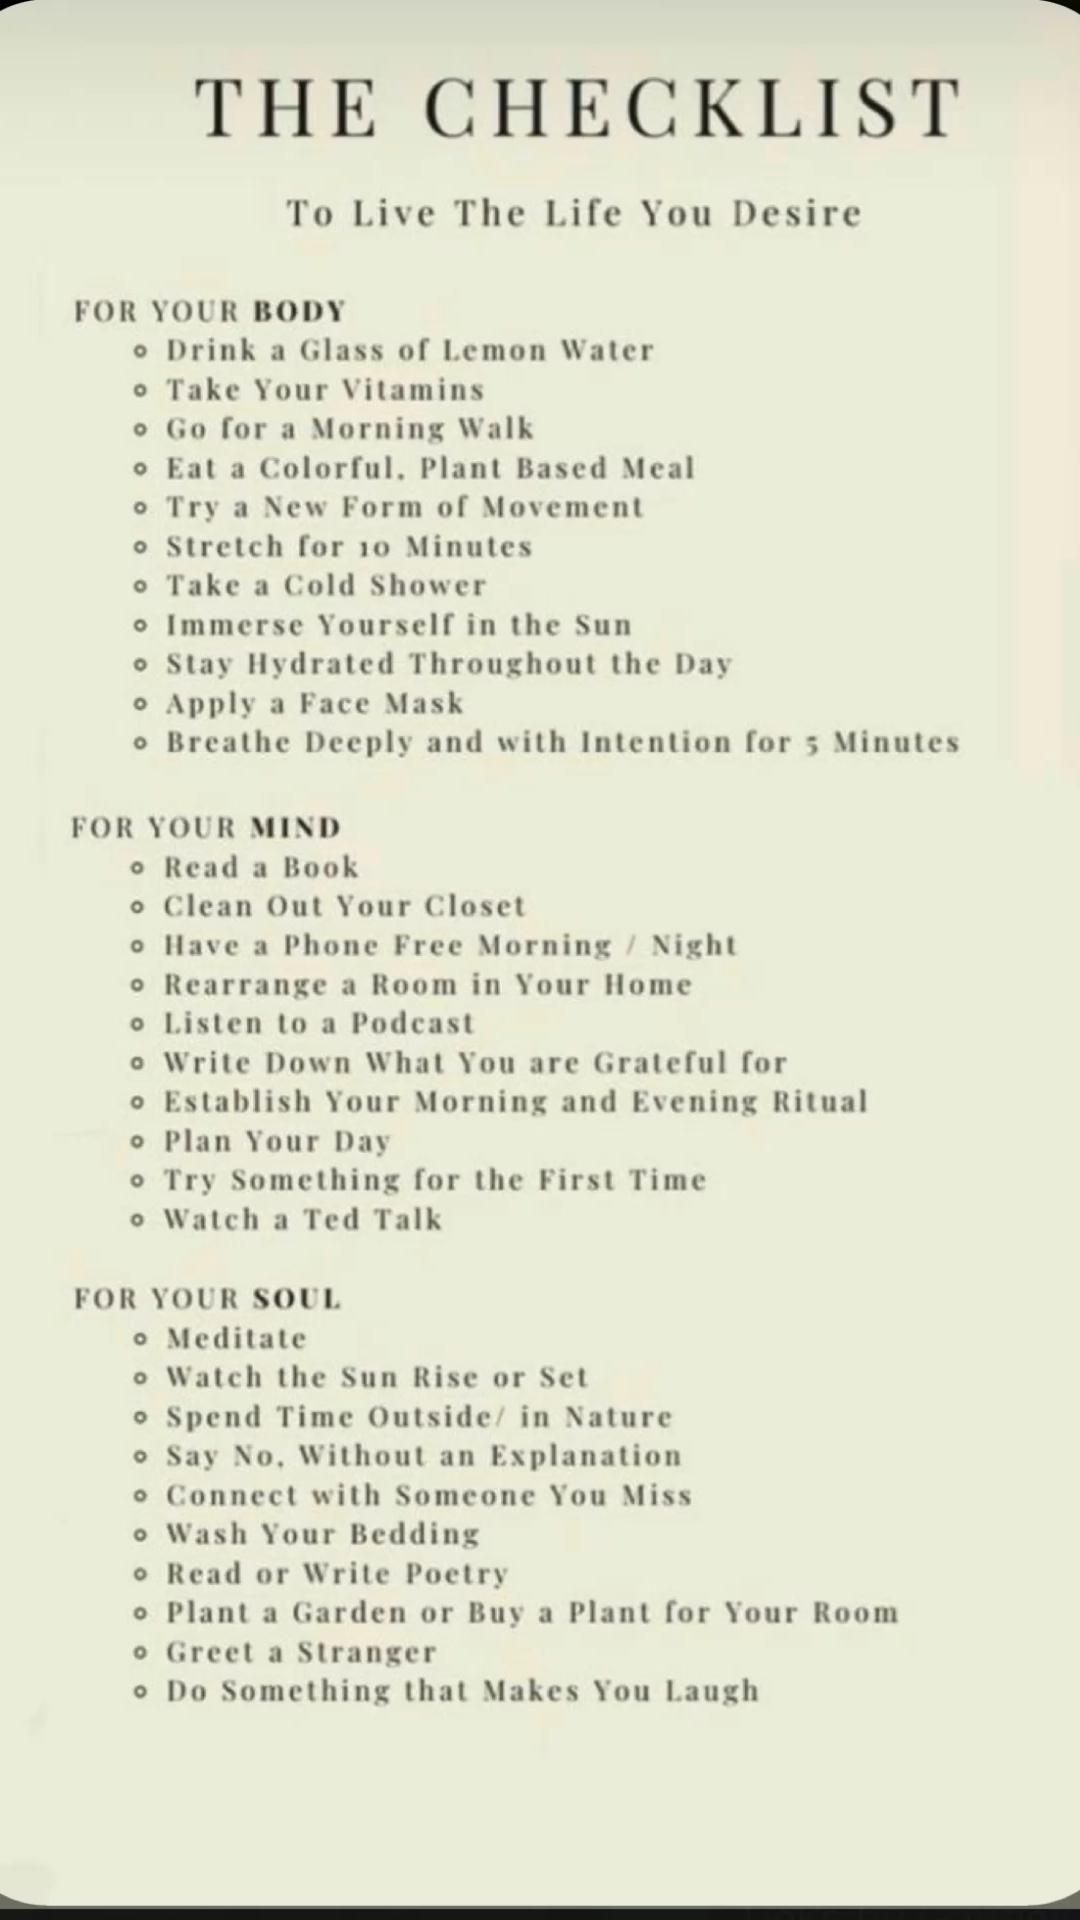 Tips for living the life you desire and stopping negative thoughts.